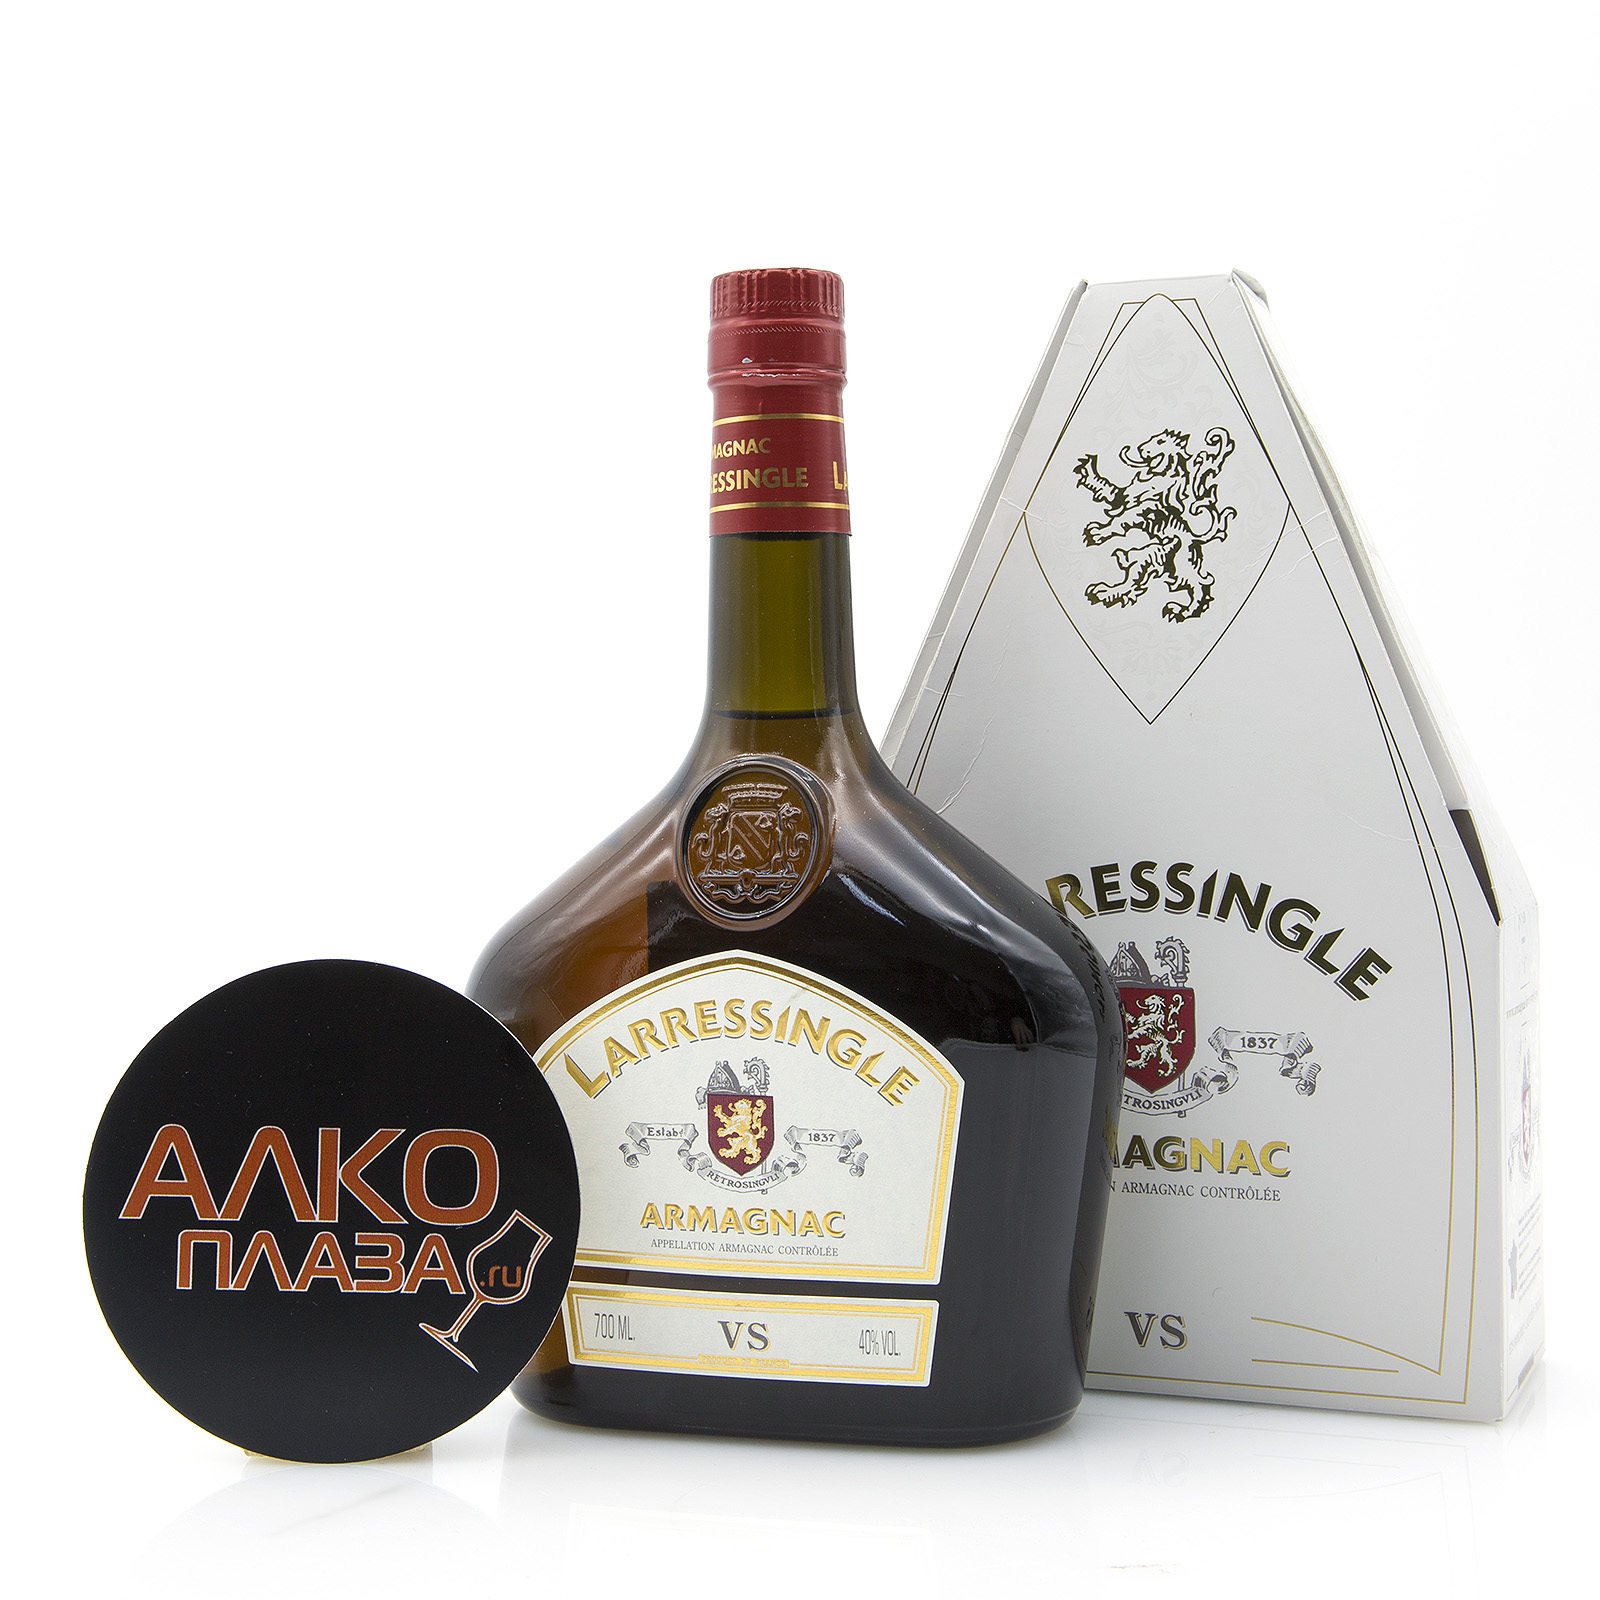 Armagnac Larressingle VS  0,7l арманьяк Ларесенгль ВС 0,7л